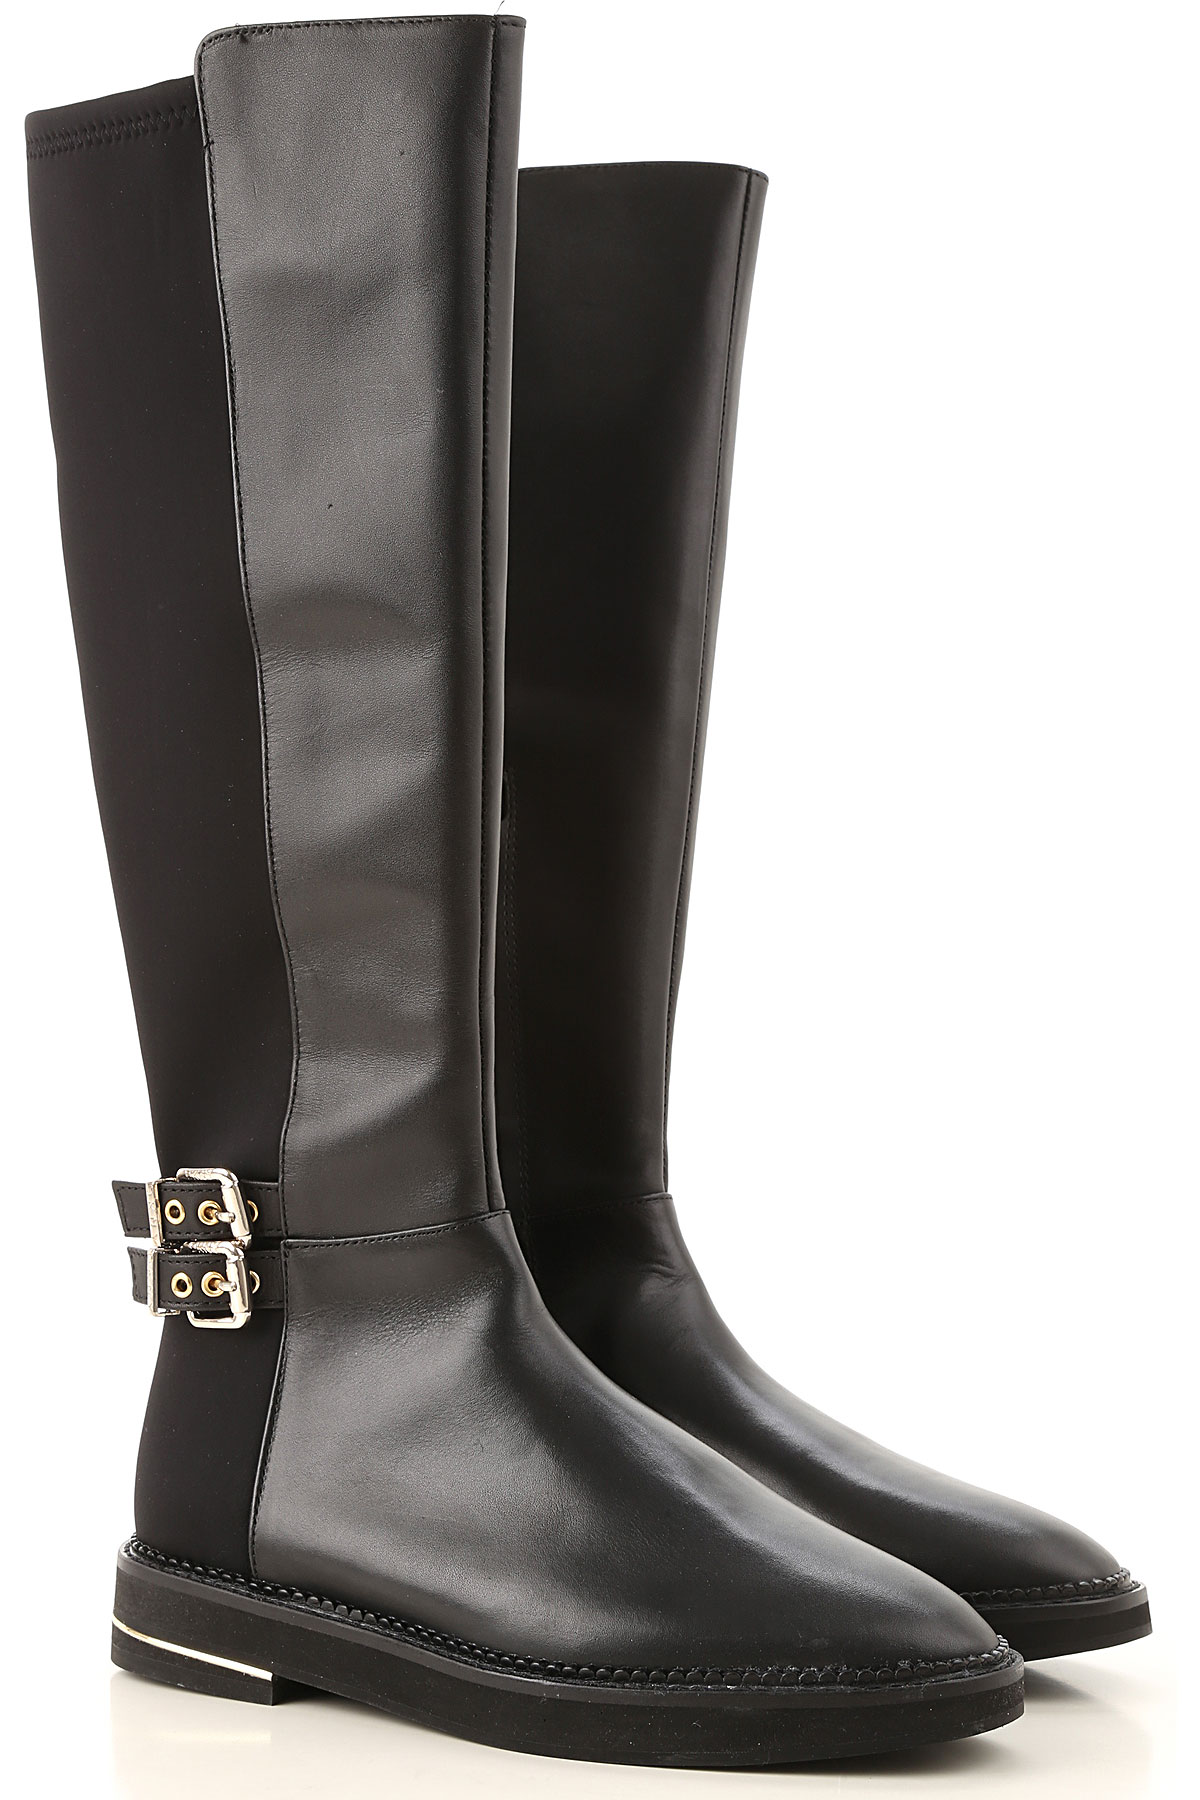 DKNY Boots for Women, Booties On Sale in Outlet, Black, Leather, 2019, 10 6 6.5 8.5 9